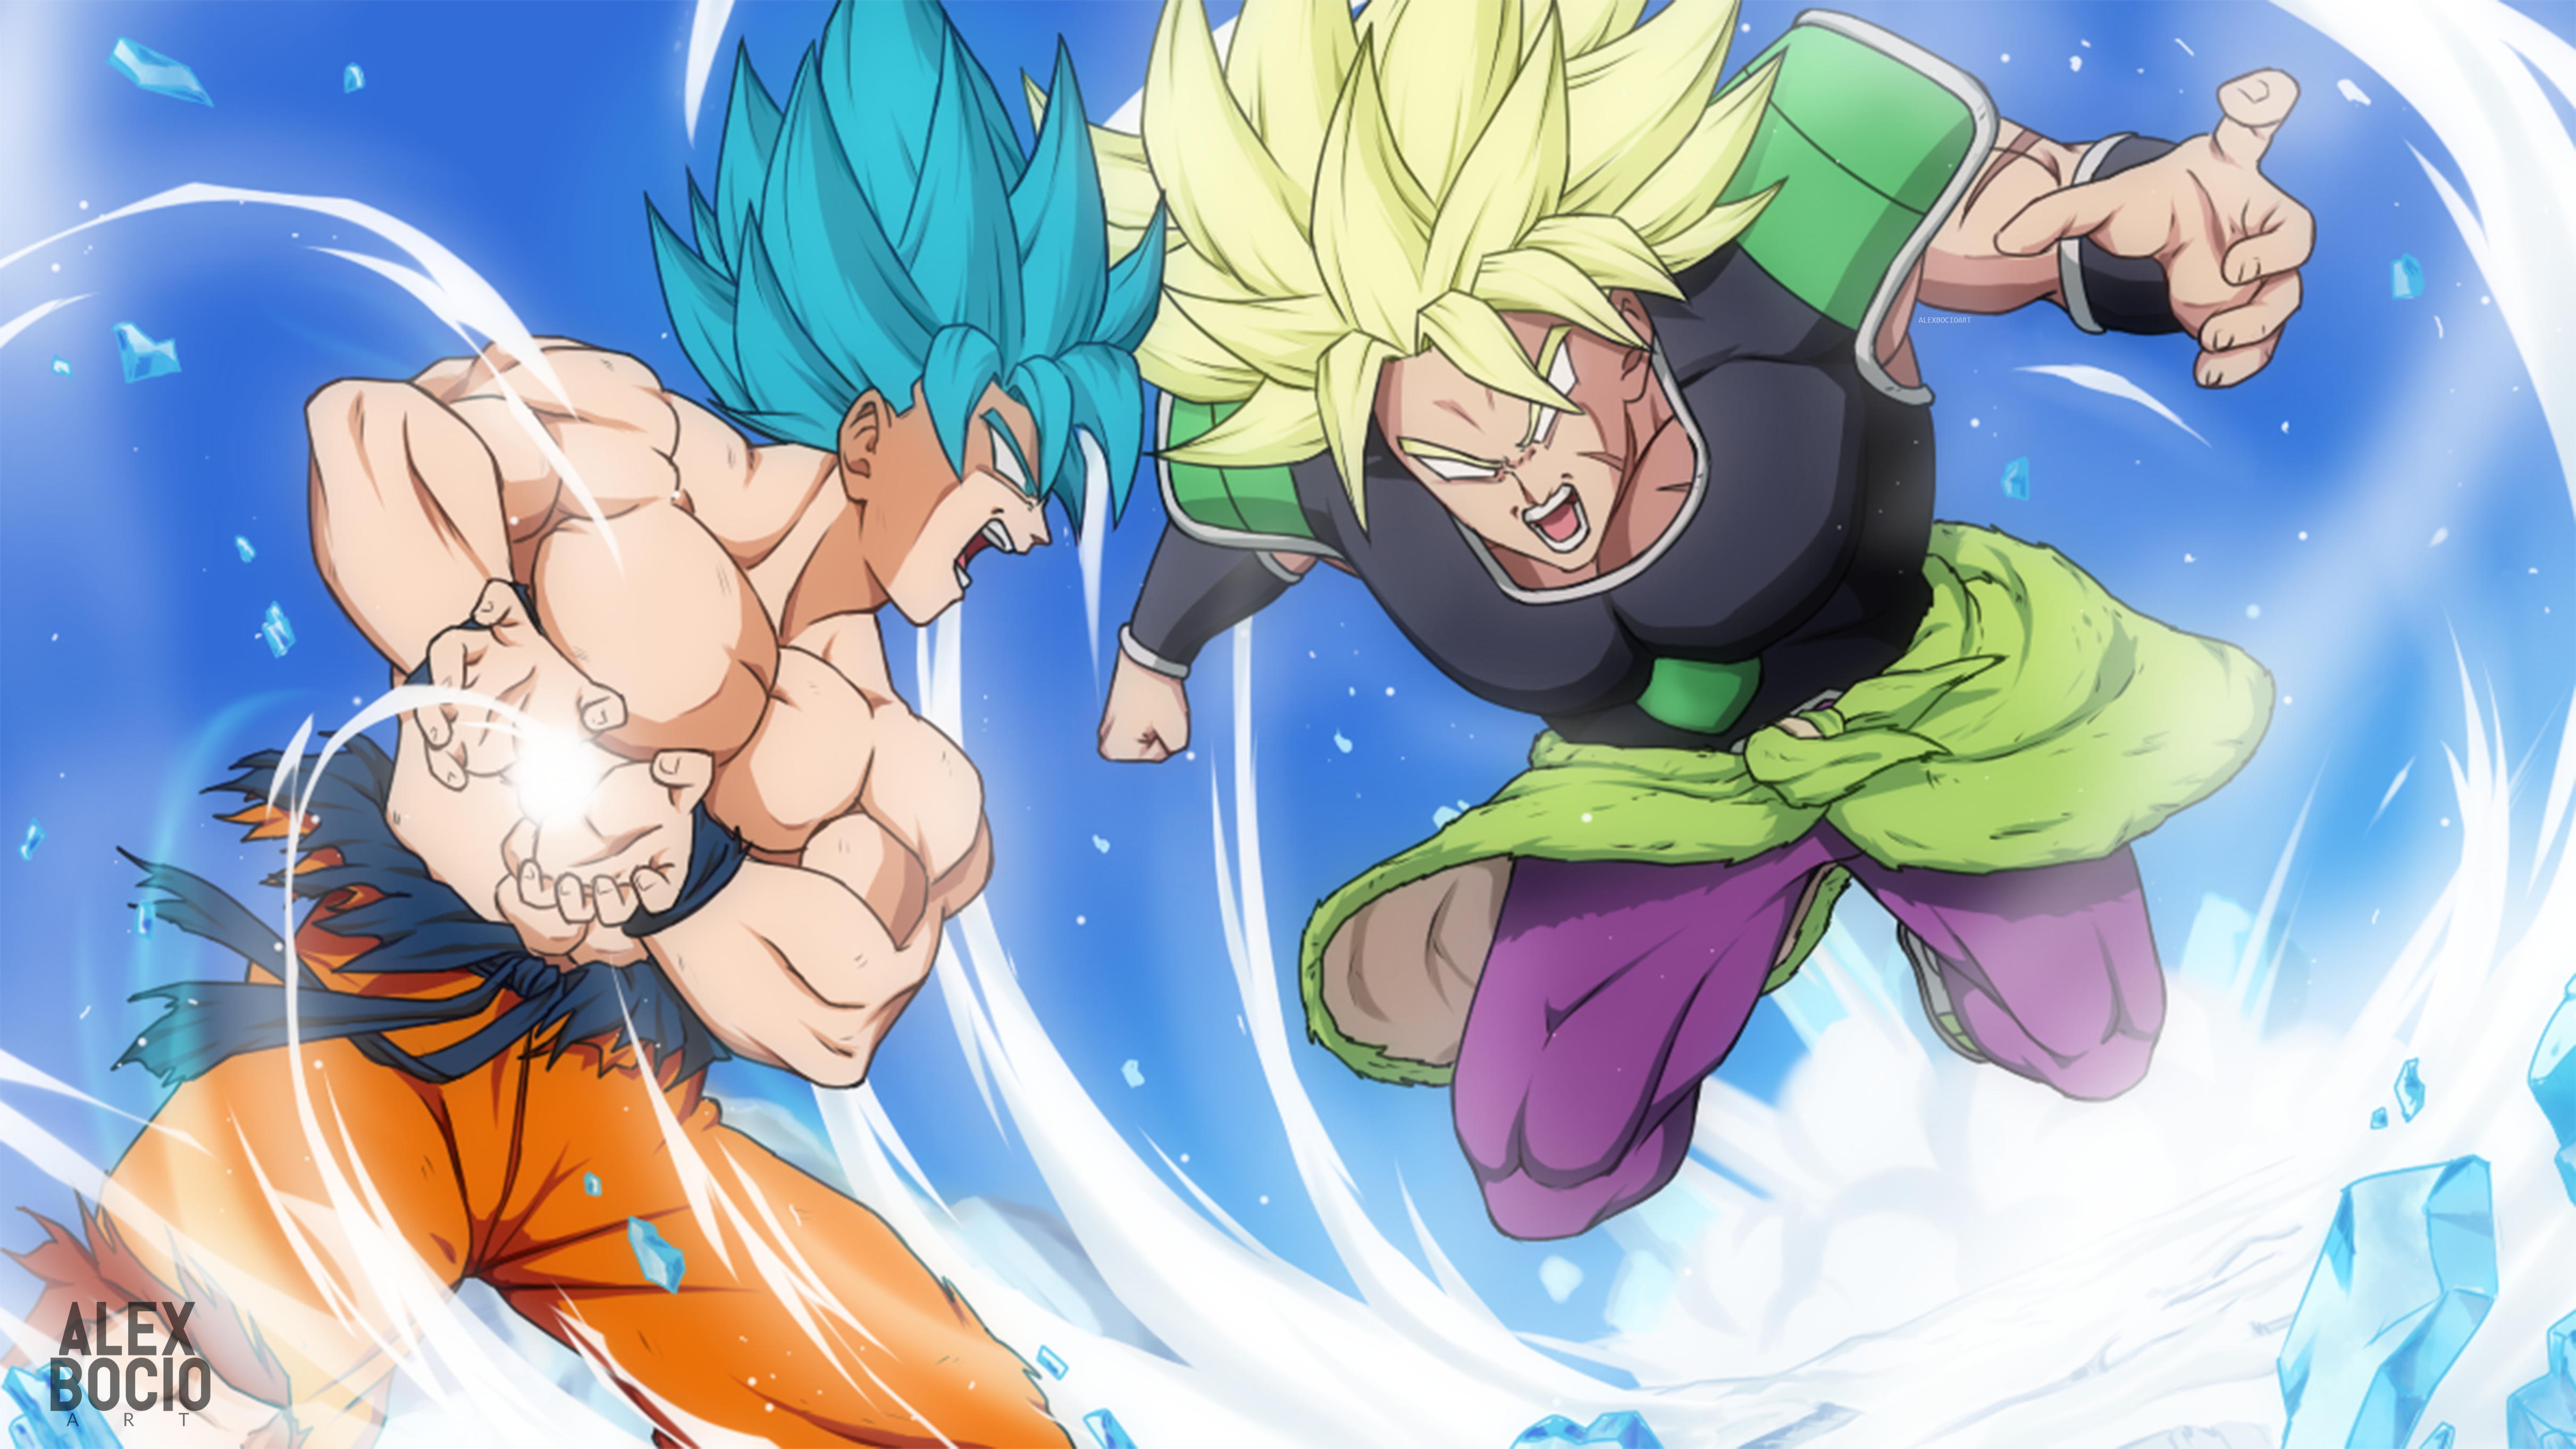 Goku Vs Broly Wallpaper Hd